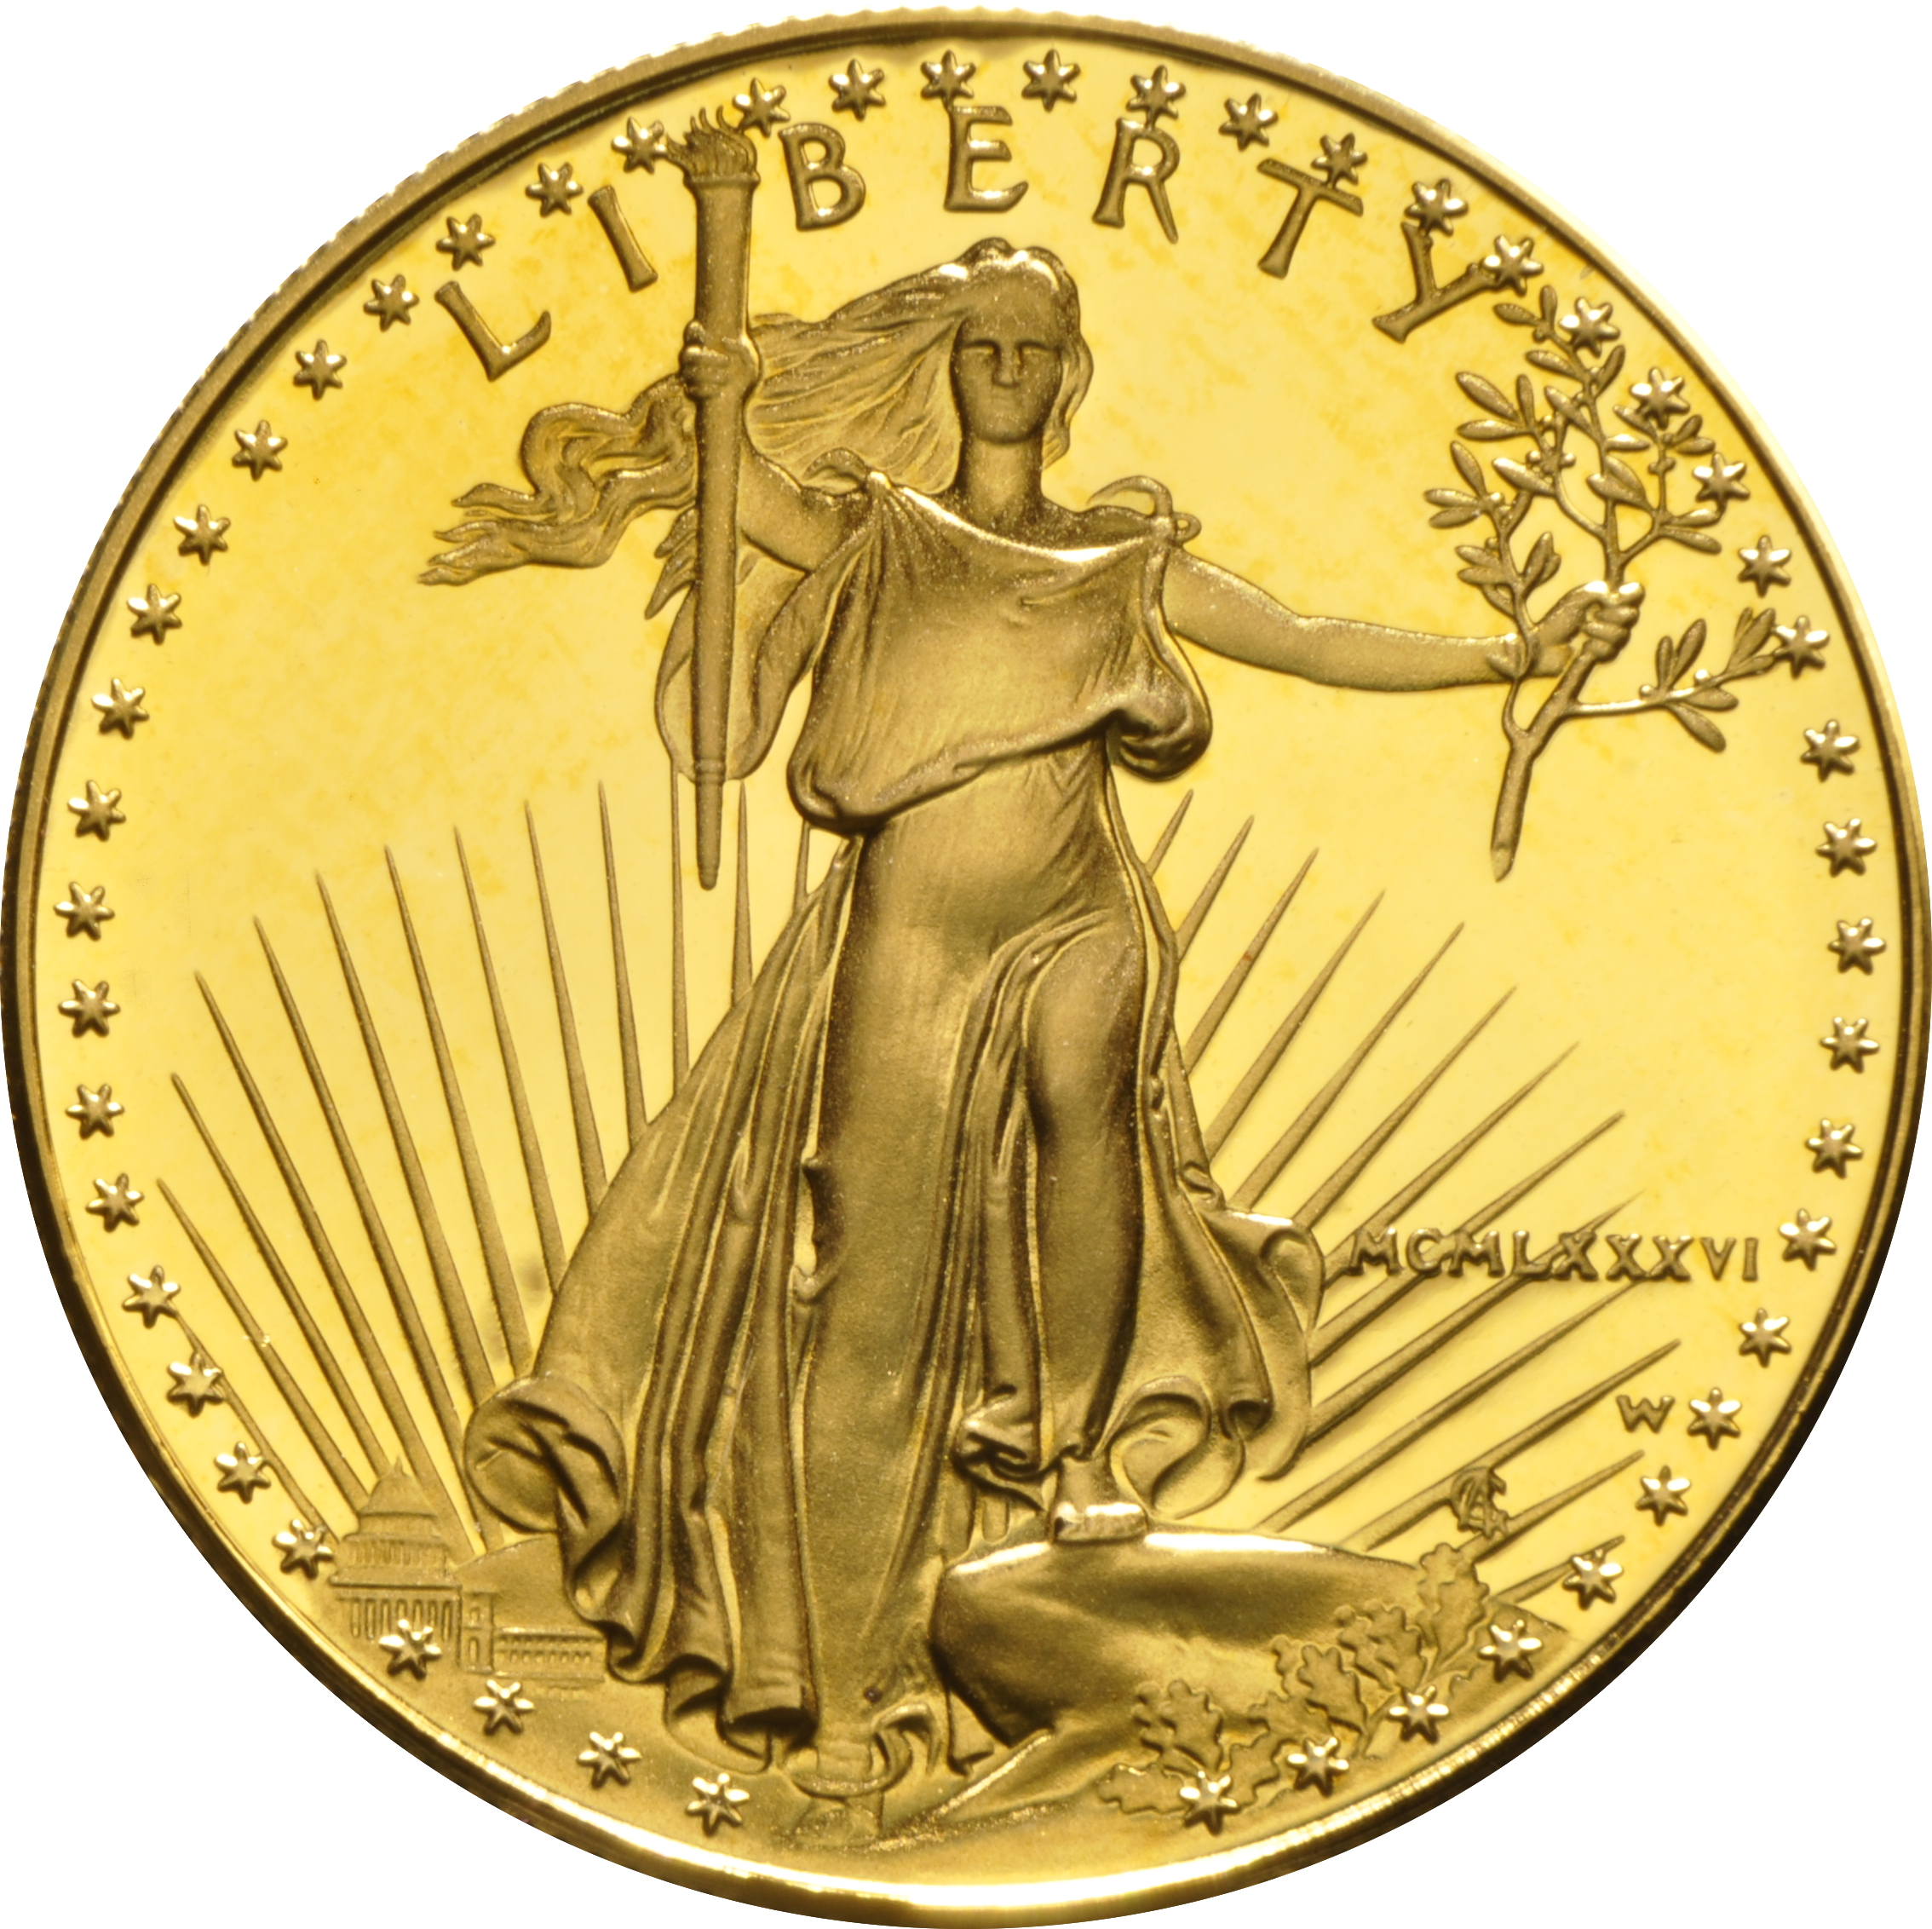 1986 Proof 1oz American Eagle Gold Coin 163 1 442